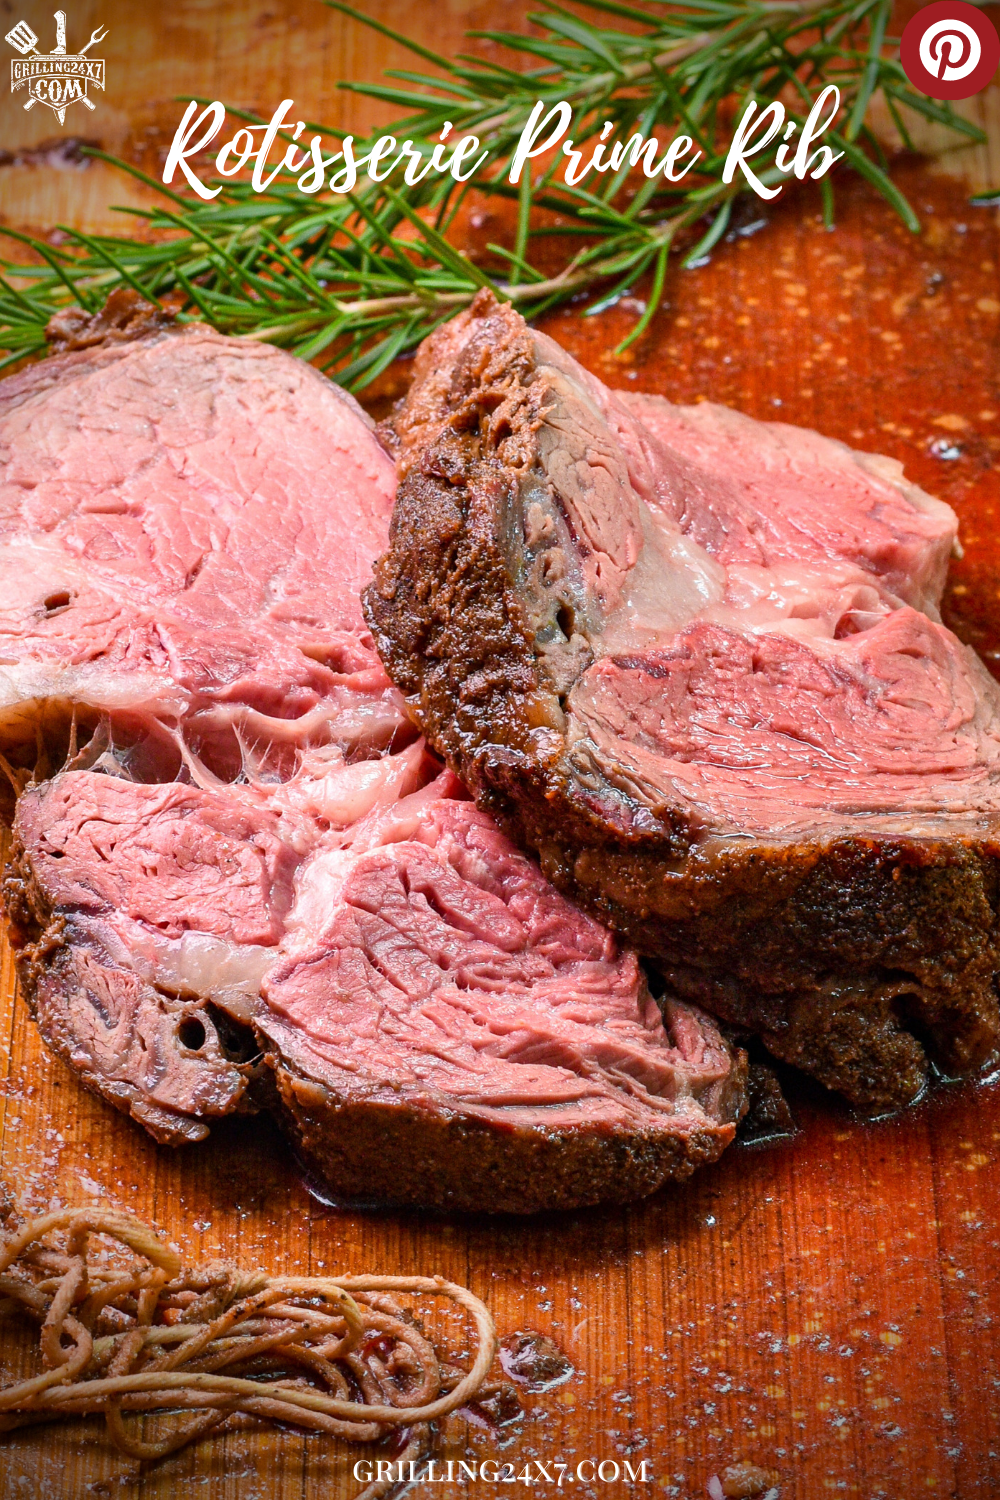 f you want the juiciest prime rib roast of your life then this Rotisserie Prime Rib is the recipe for you!! Tender perfectly cooked beef with an unbelievable crust. #smokedprimerib #weberkettle #rotisserieprimerib #Lowcarbrecipe